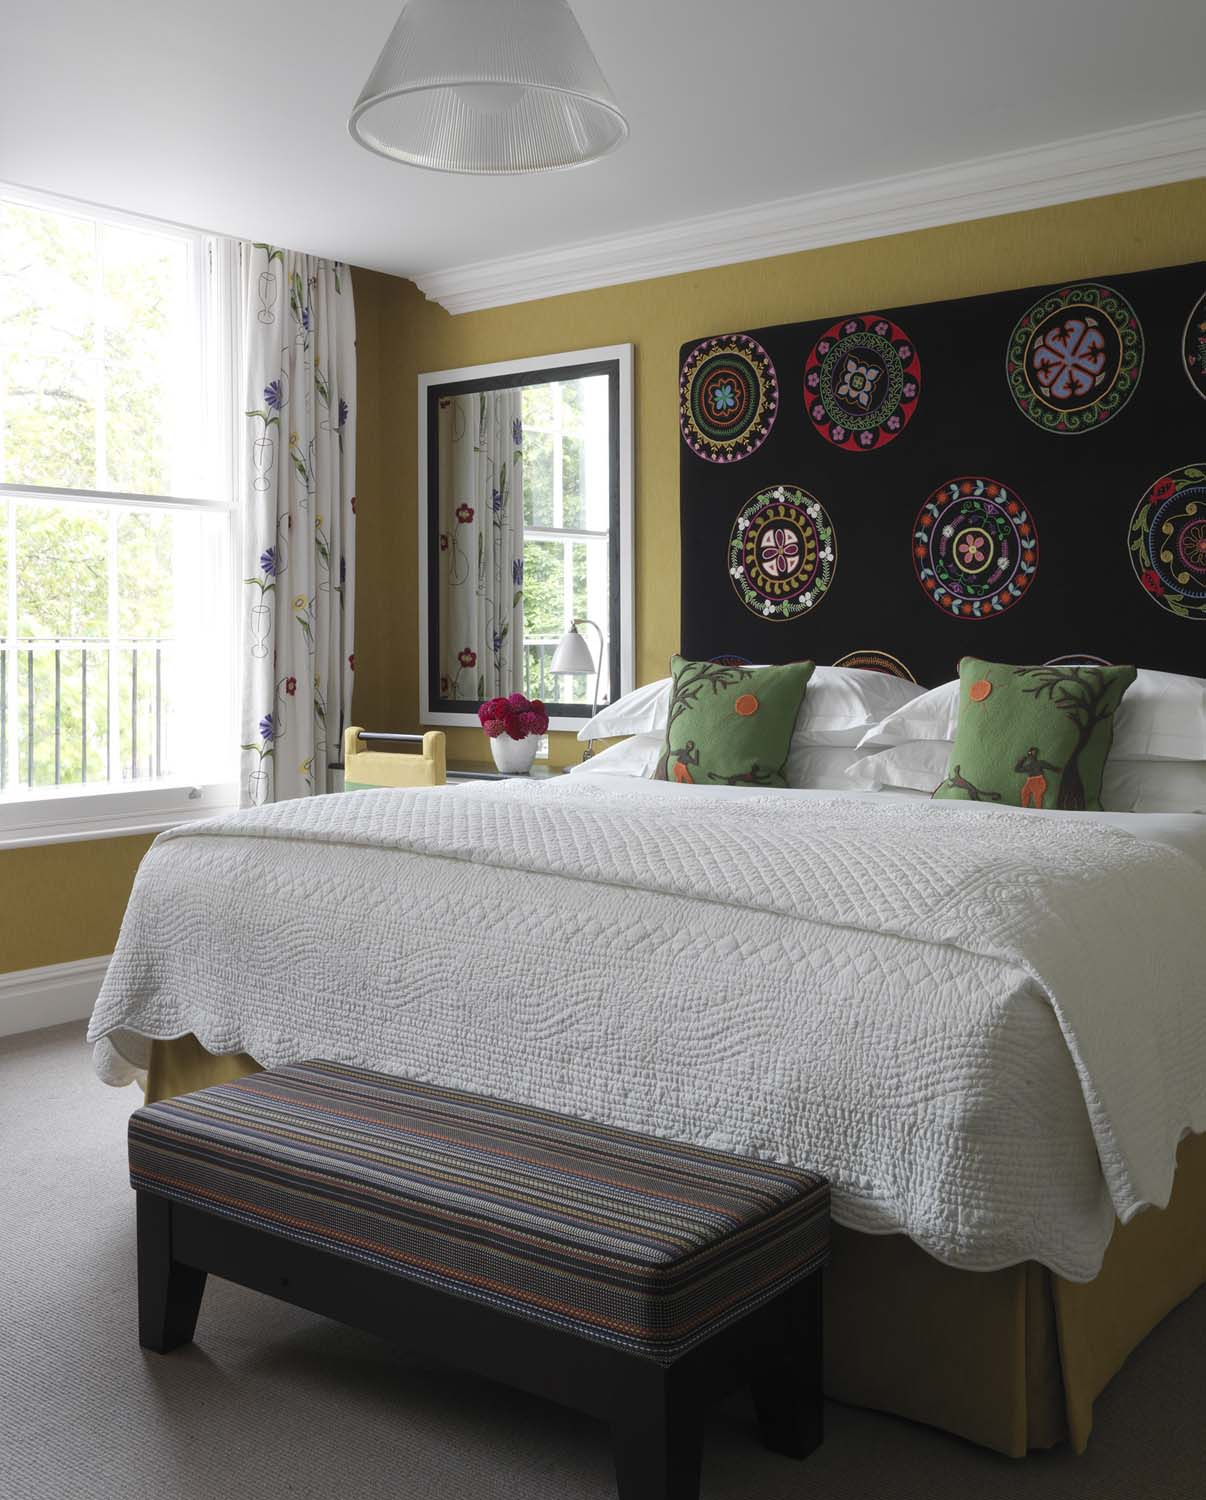 The Dorset Square room designed by Kit Kemp with embroidered headboard